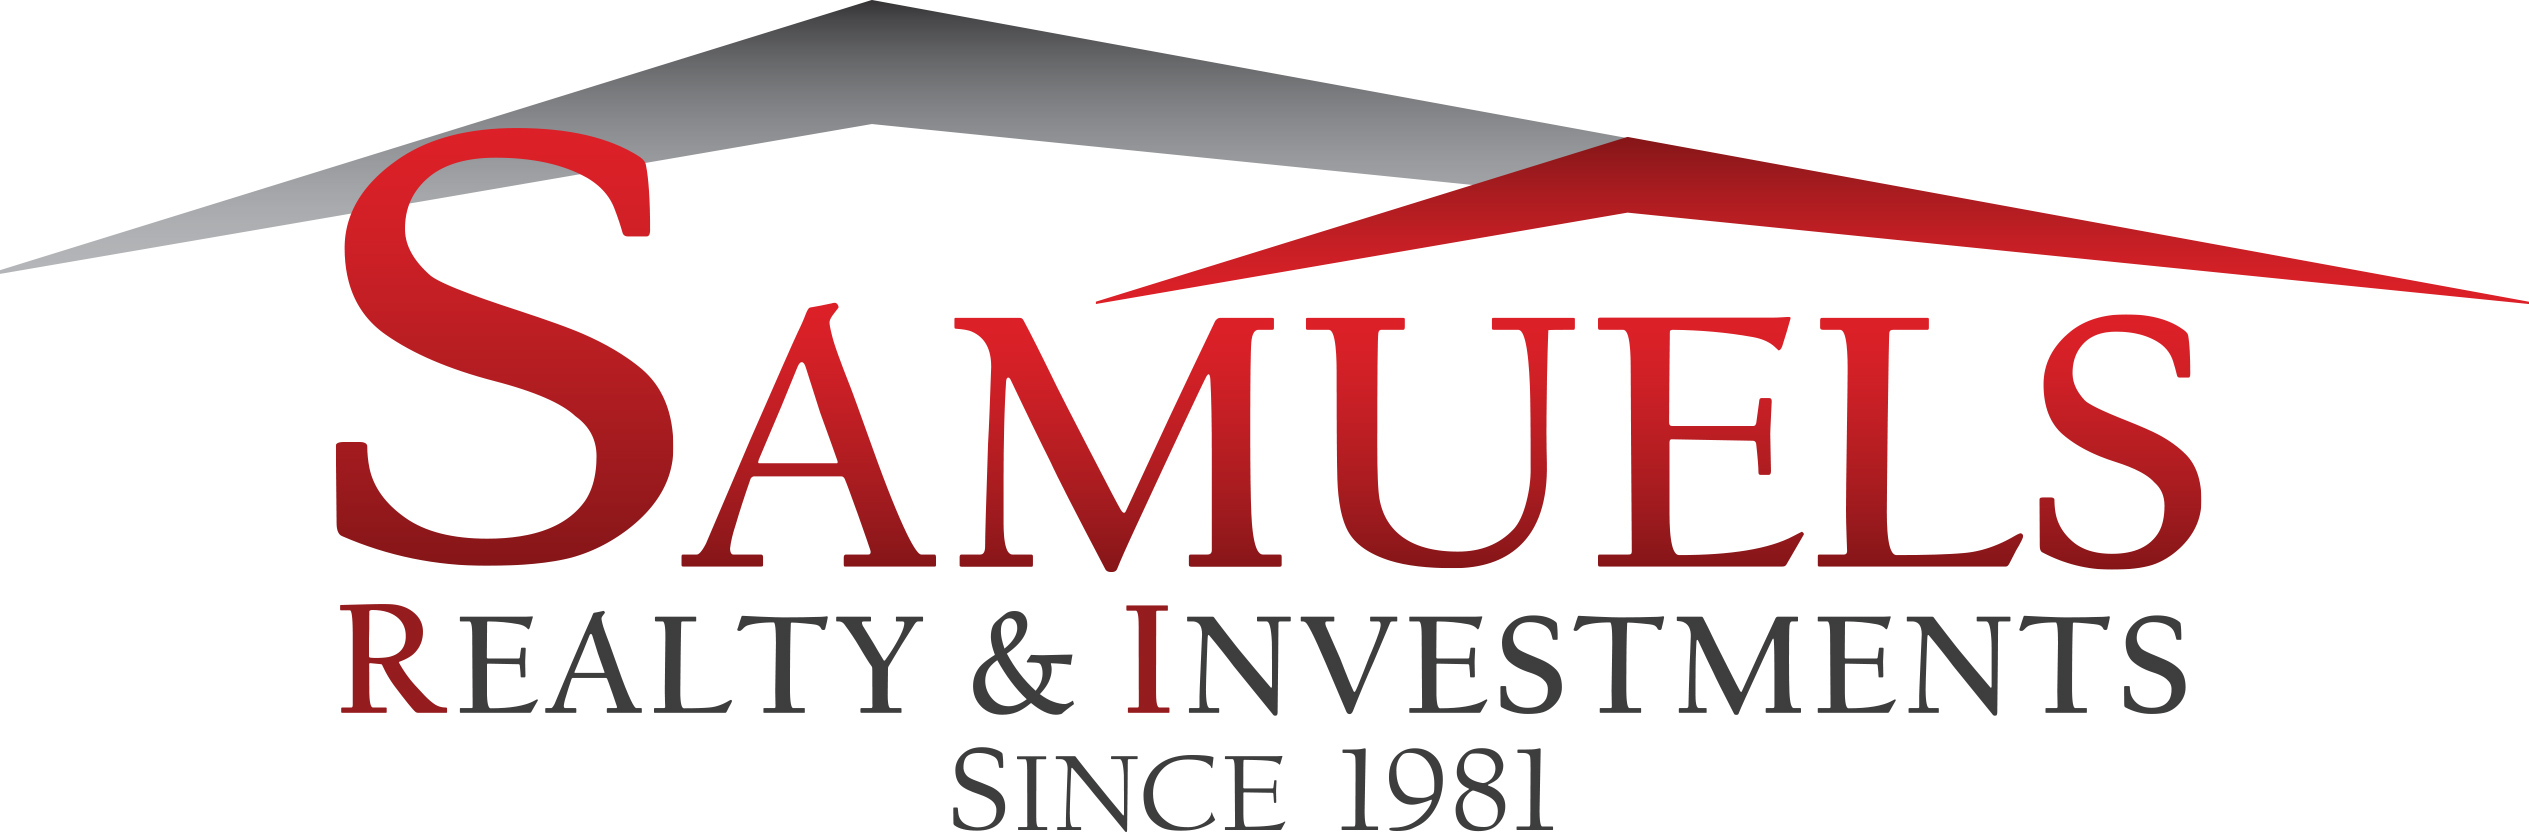 Samuels Realty and Investments